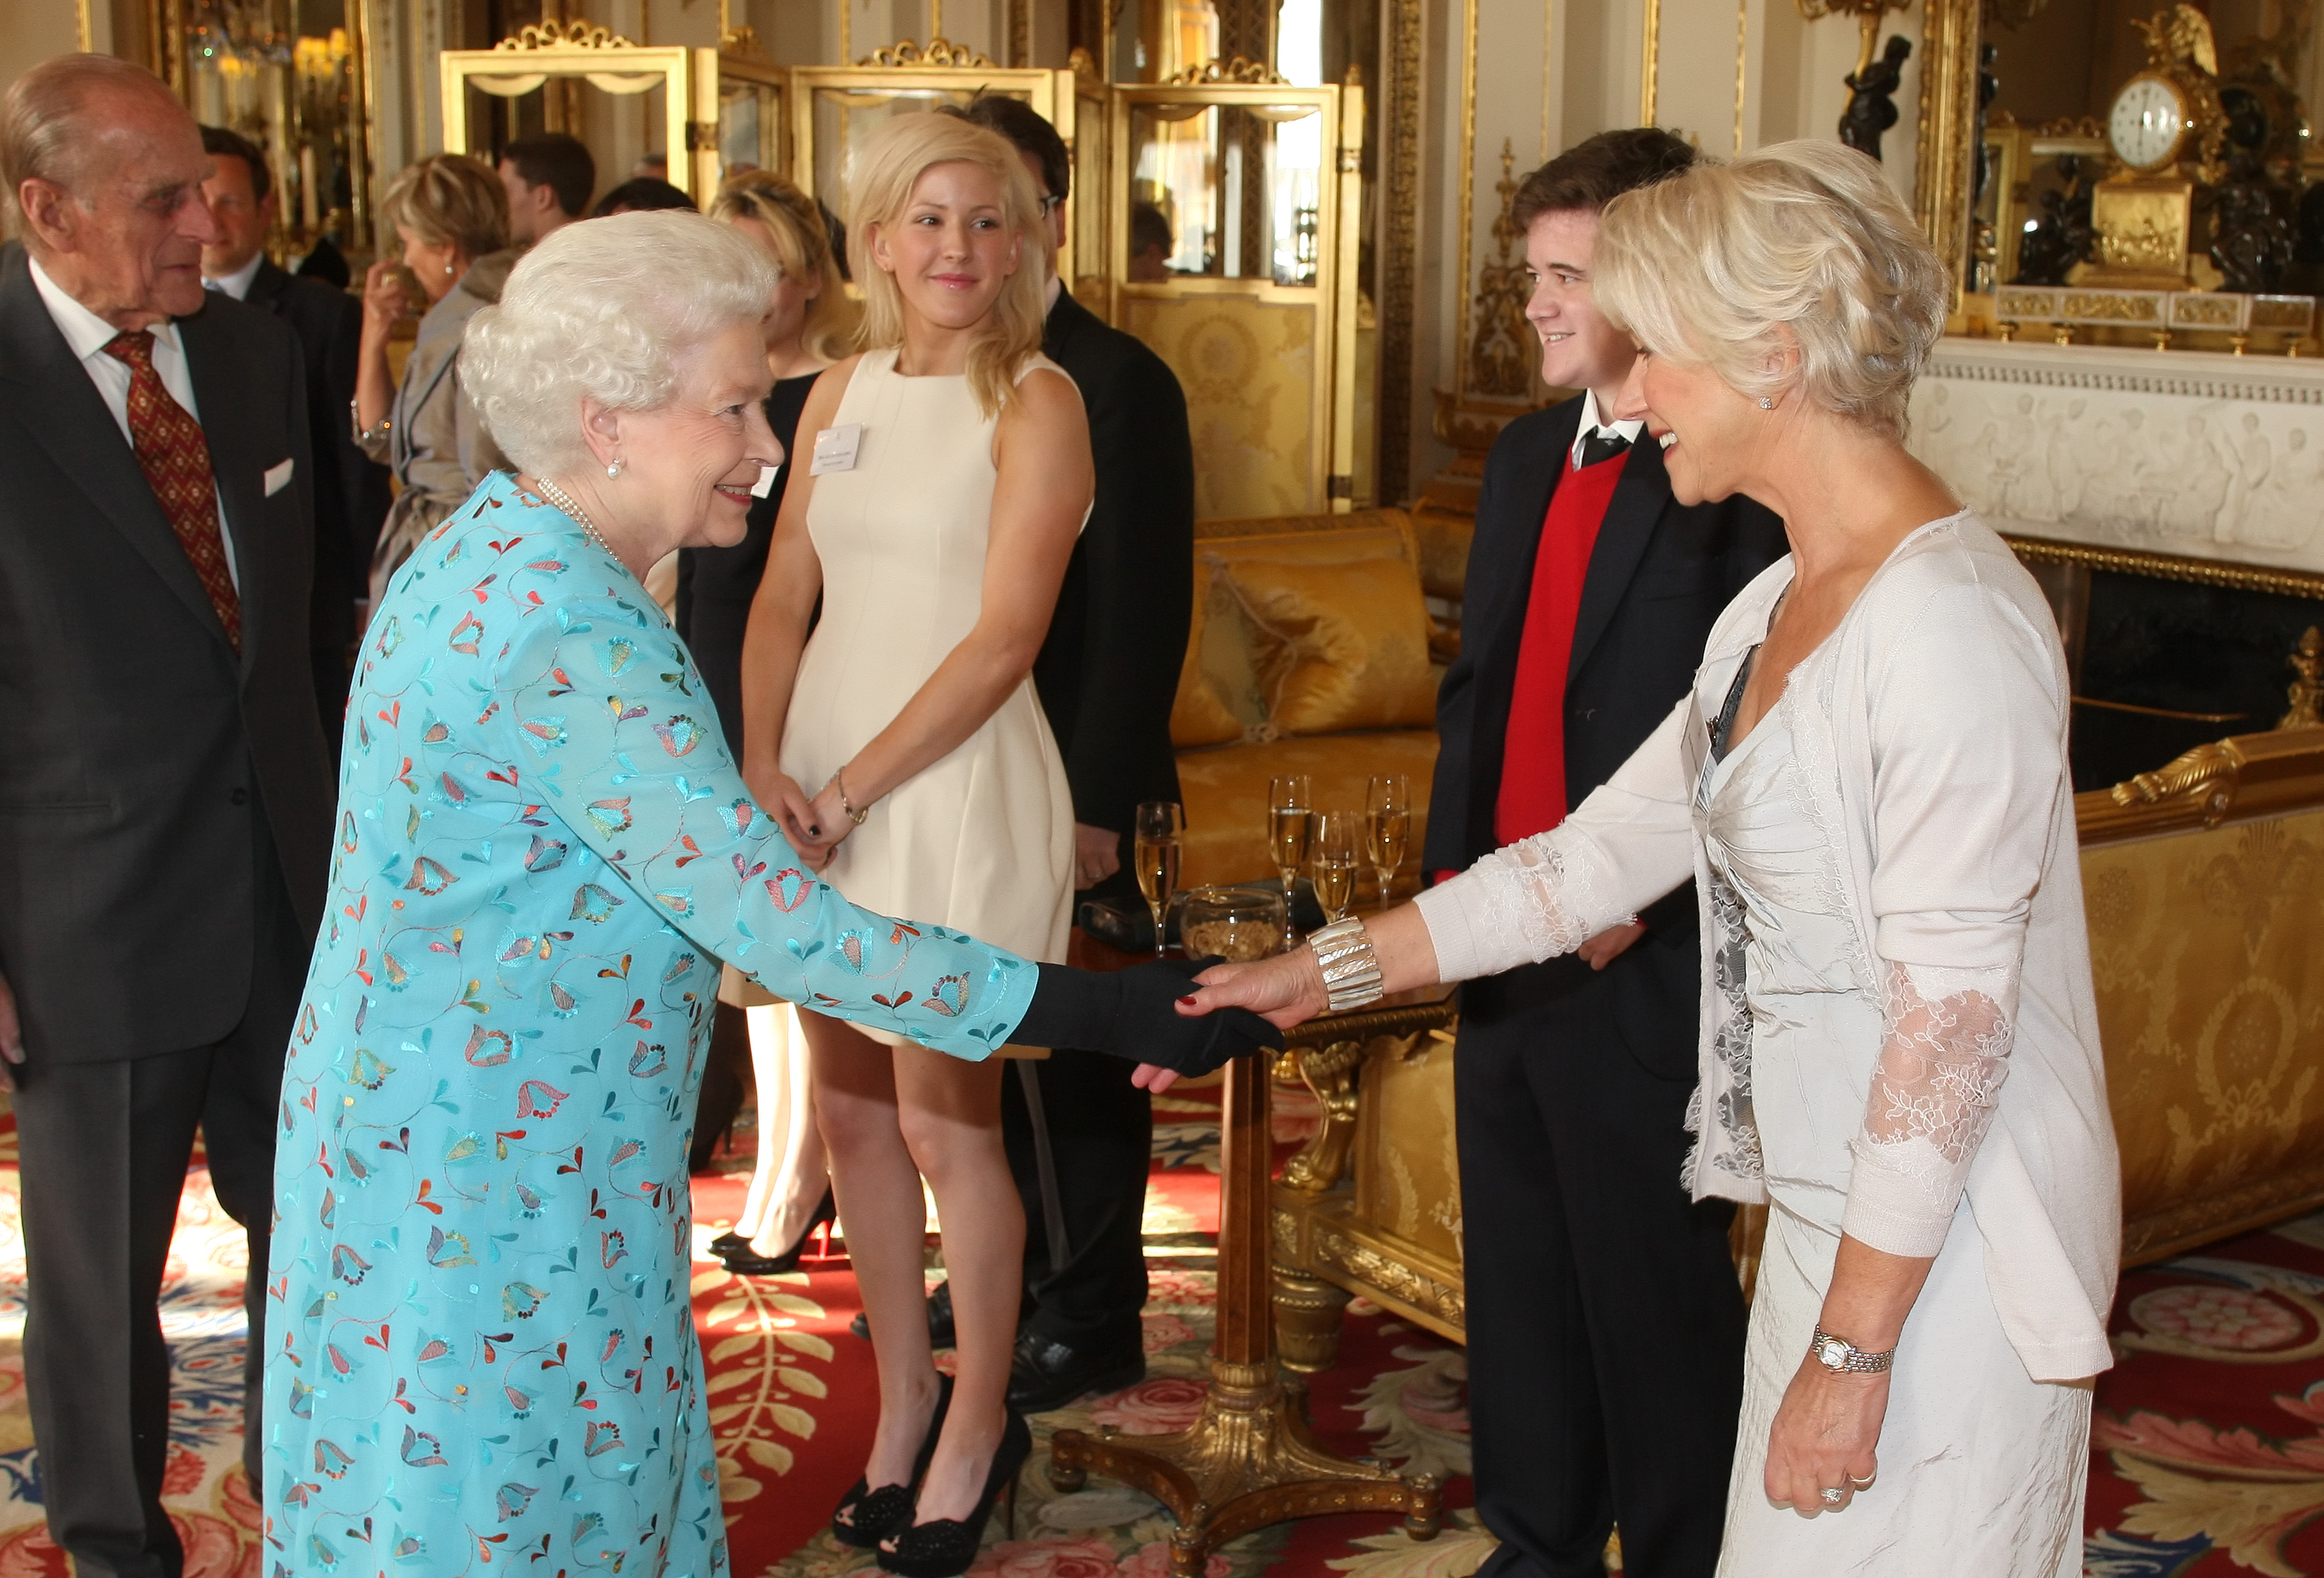 Queen Elizabeth II meets with Dame Helen Mirren (R) at a performing Arts reception at Buckingham Palace on May 9, 2011 in London, England.